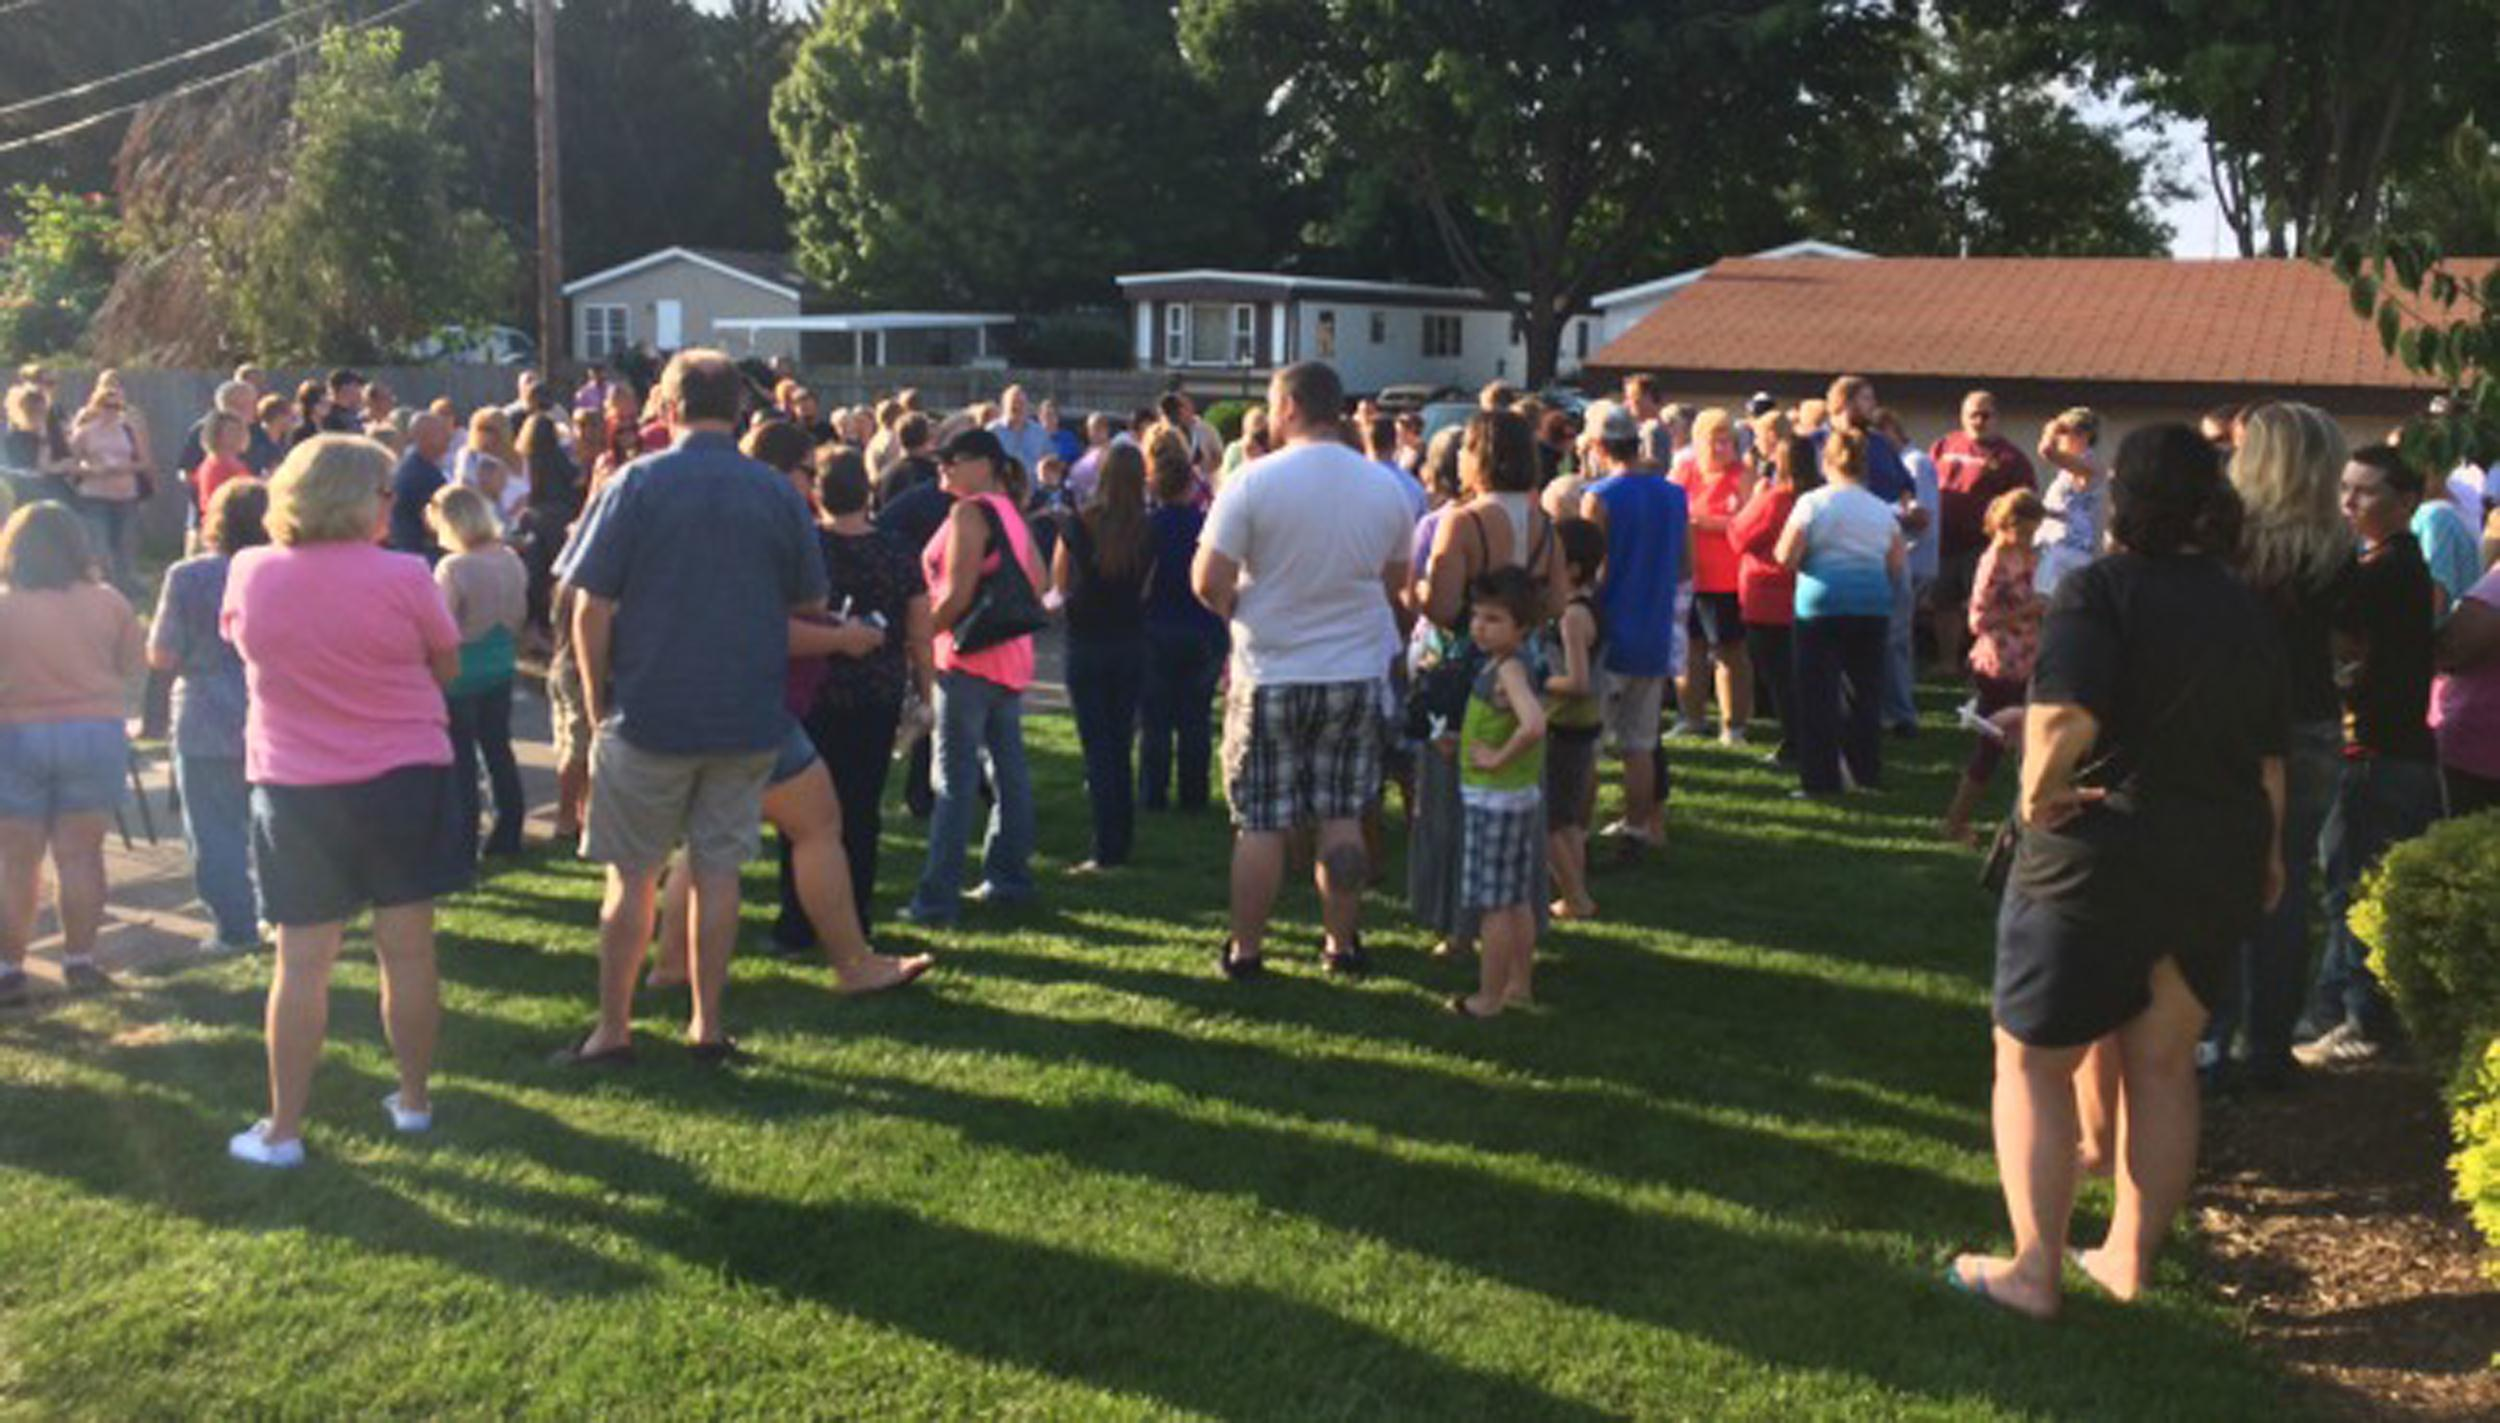 Image: Several hundred people gathered for a candlelight vigil Wednesday night at the park where 9-year-old Michael